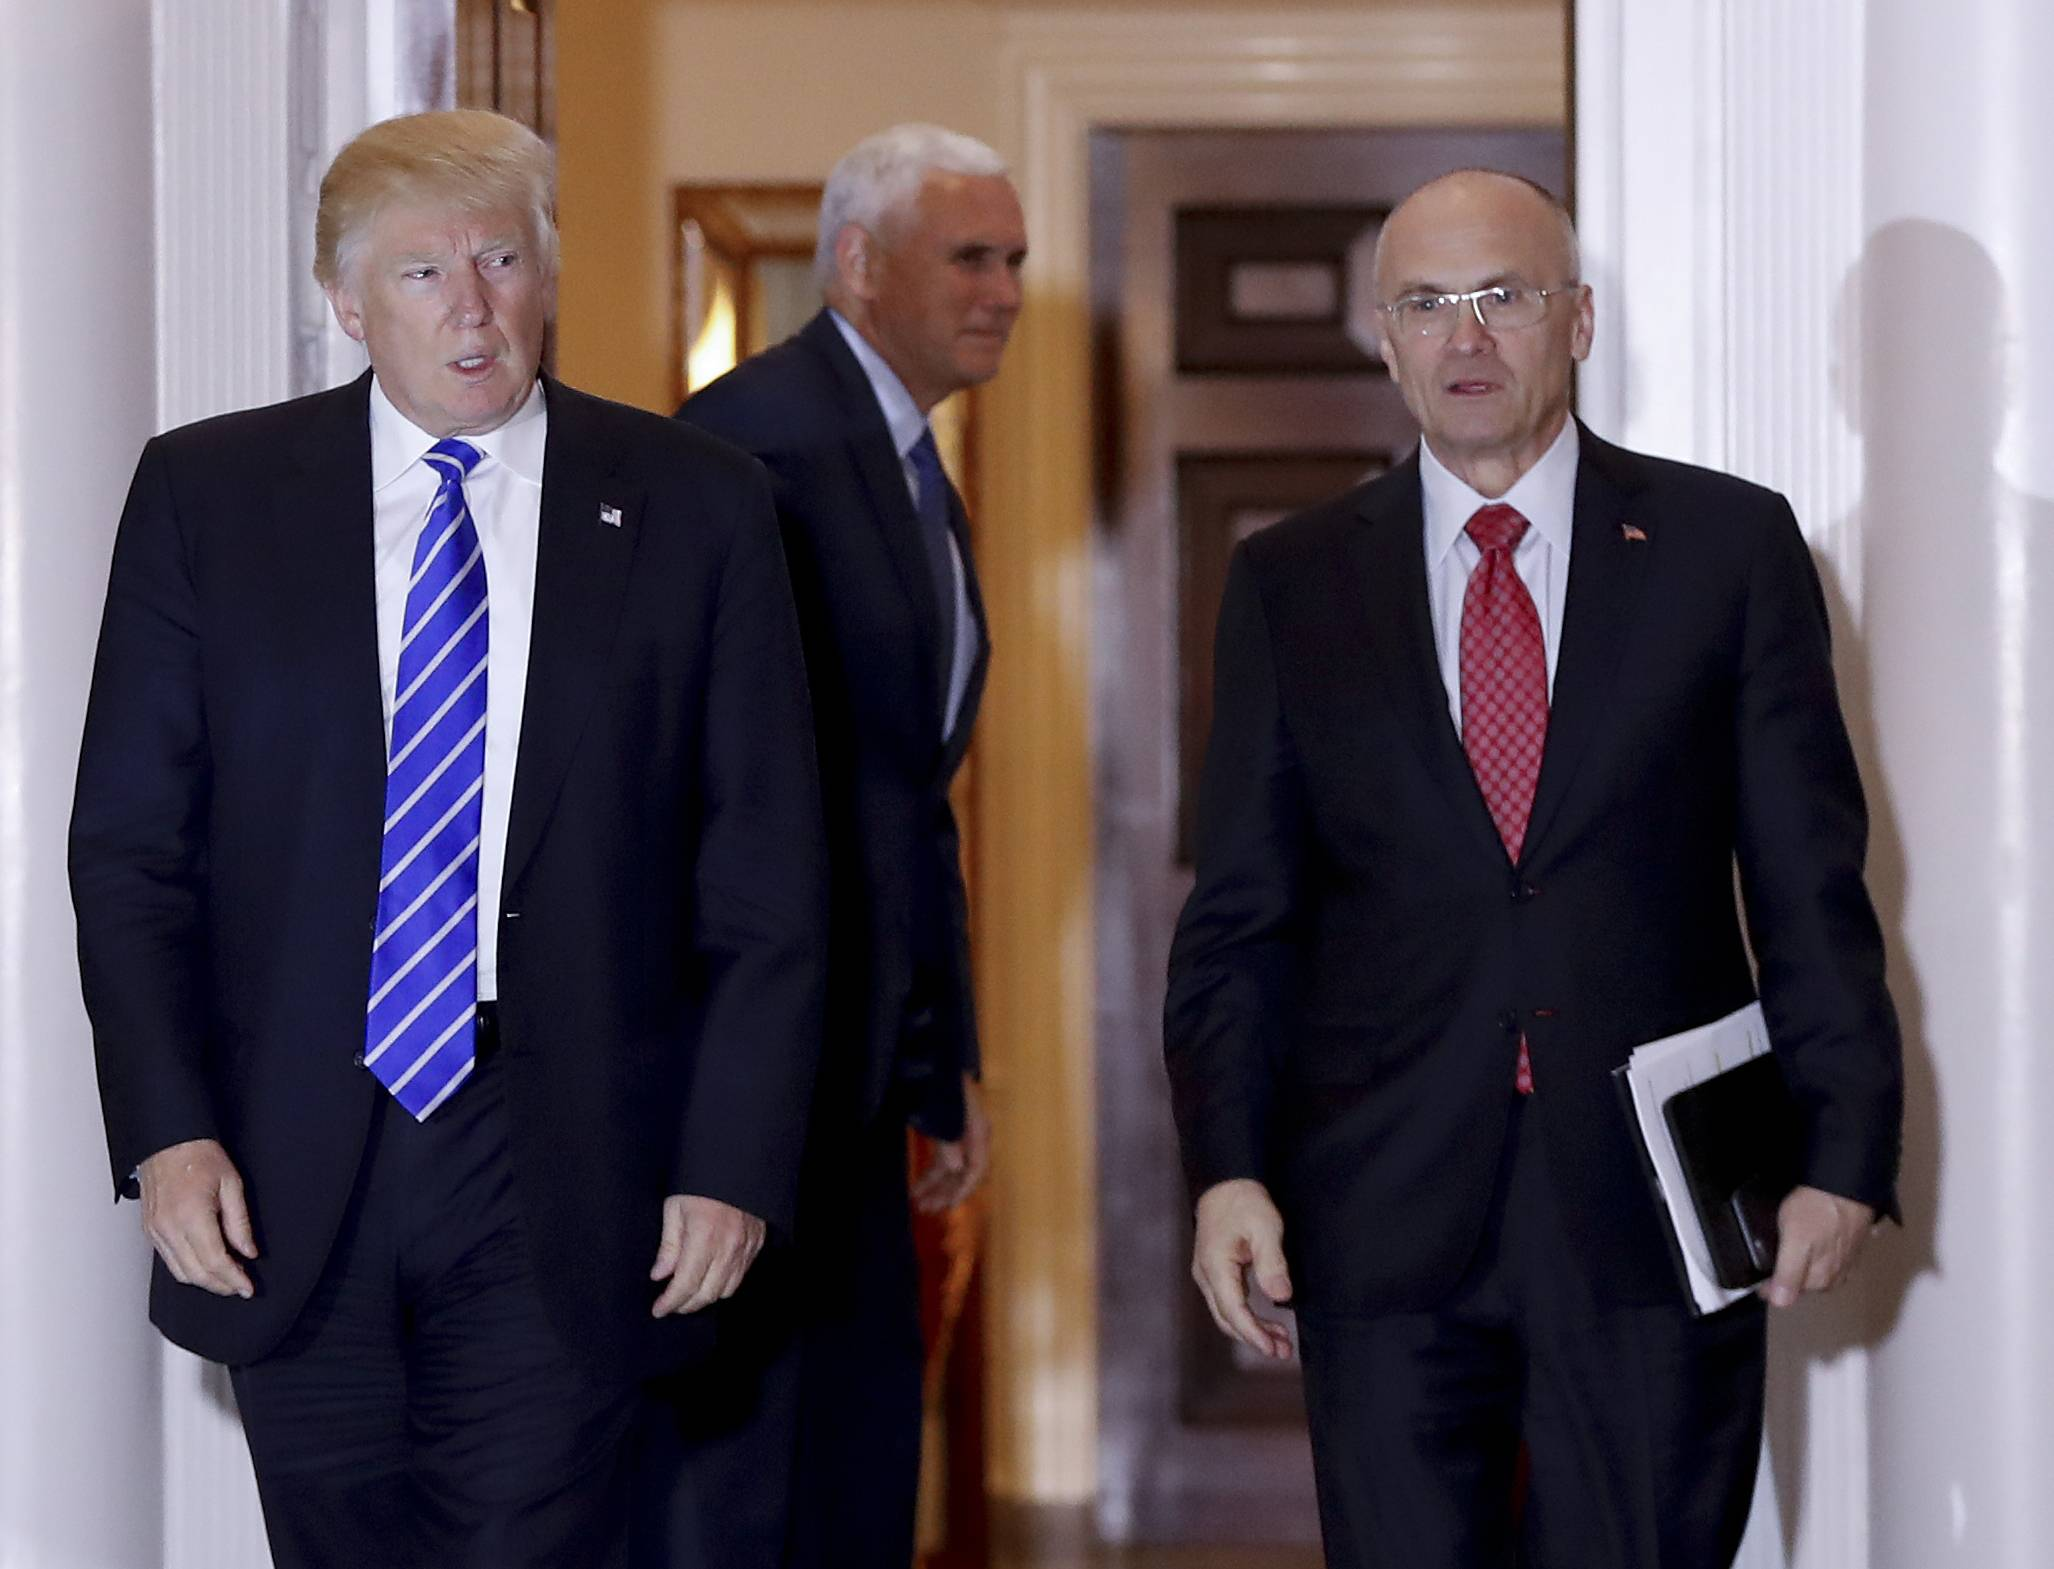 Labor Secretary-designate Andy Puzder, right, has withdrawn his nomination for labor secretary after Senate Republicans seemed unlikely to support him — in part over taxes he belatedly paid on a former housekeeper not authorized to work in the United States.